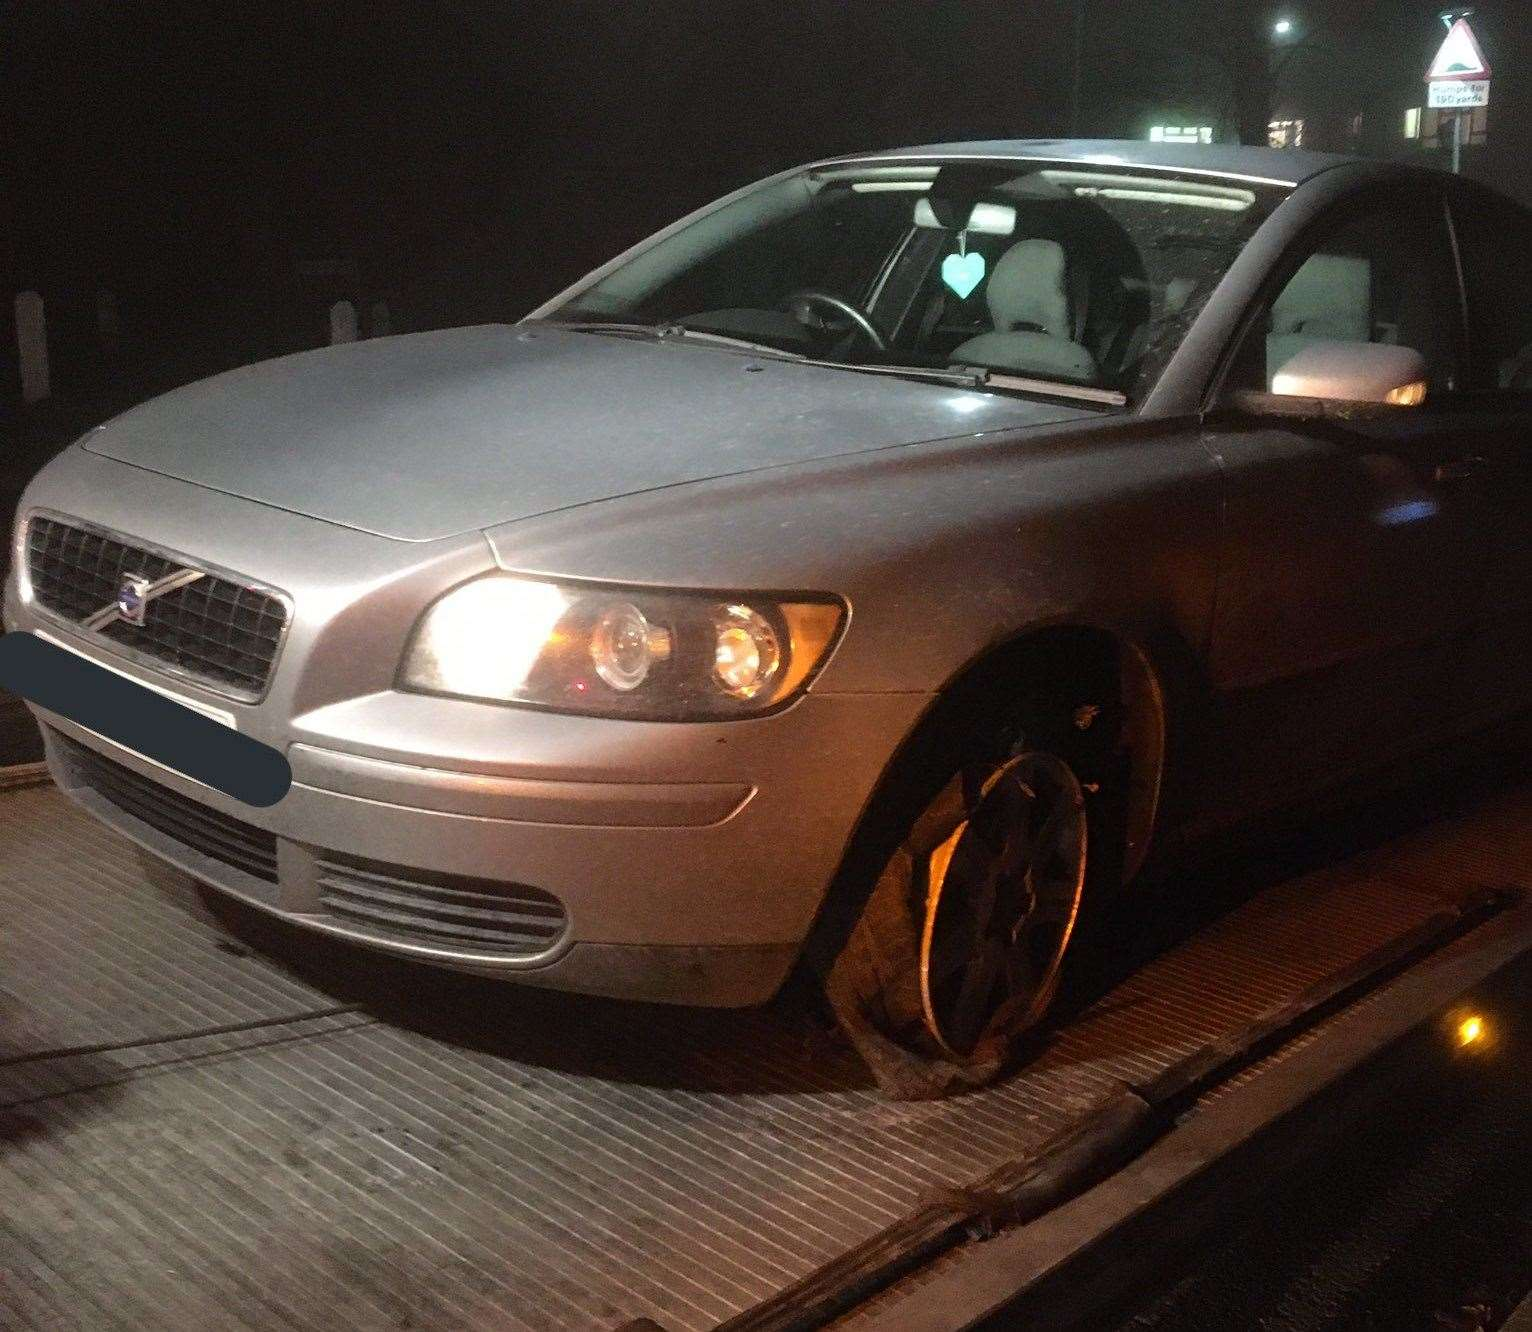 The Volvo estate reached up to 110mph in the chase. Photo: Kent Police RPU